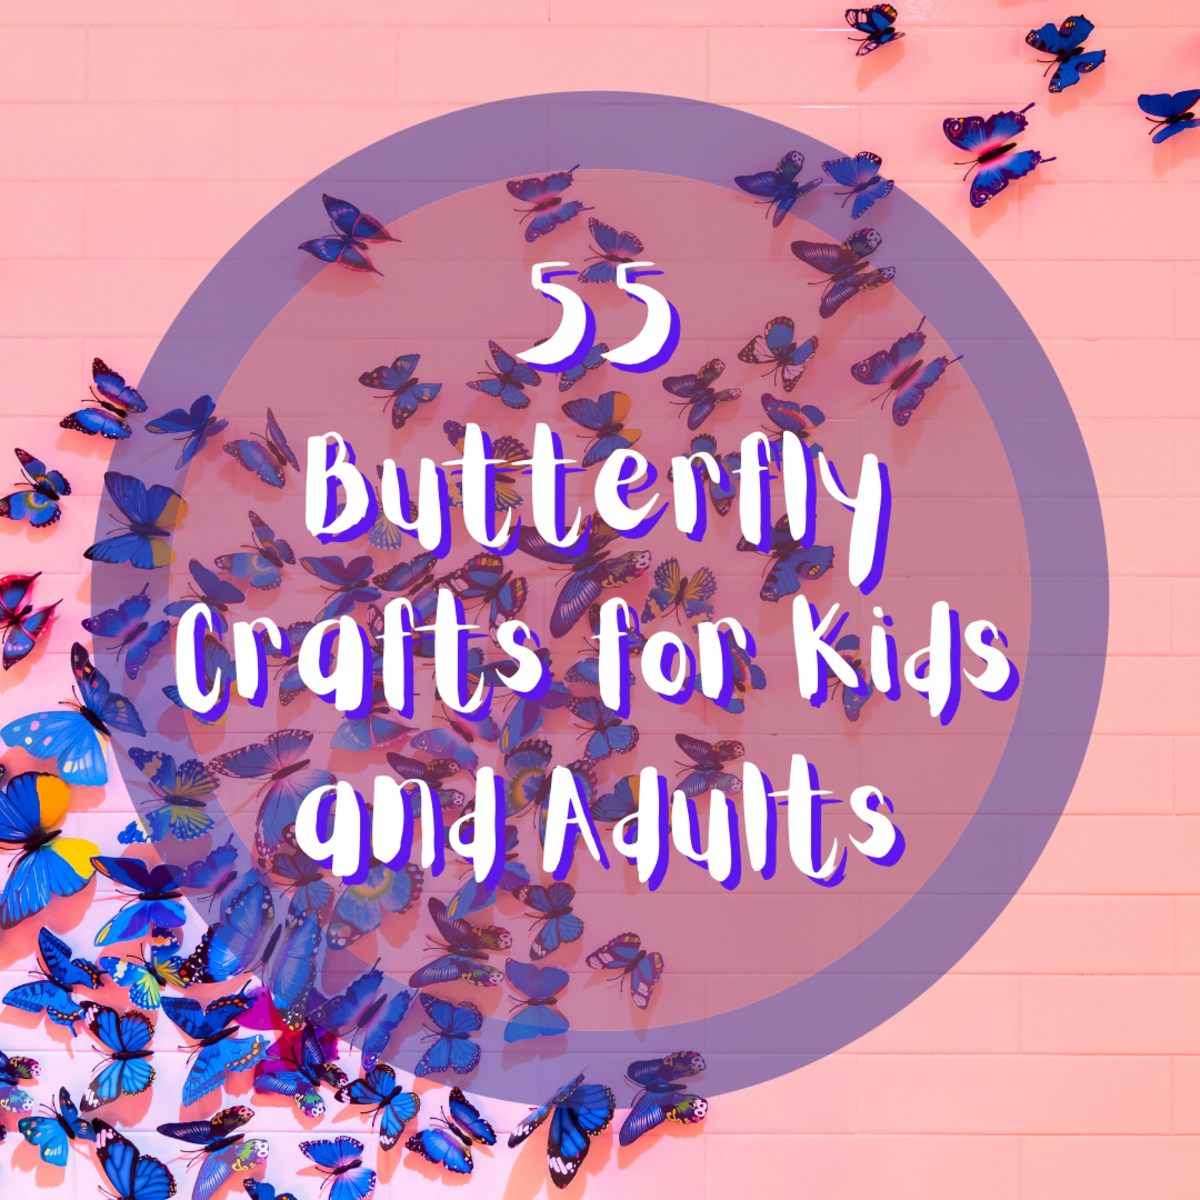 This article provides you with 55 various butterfly crafts for adults and kids to enjoy!